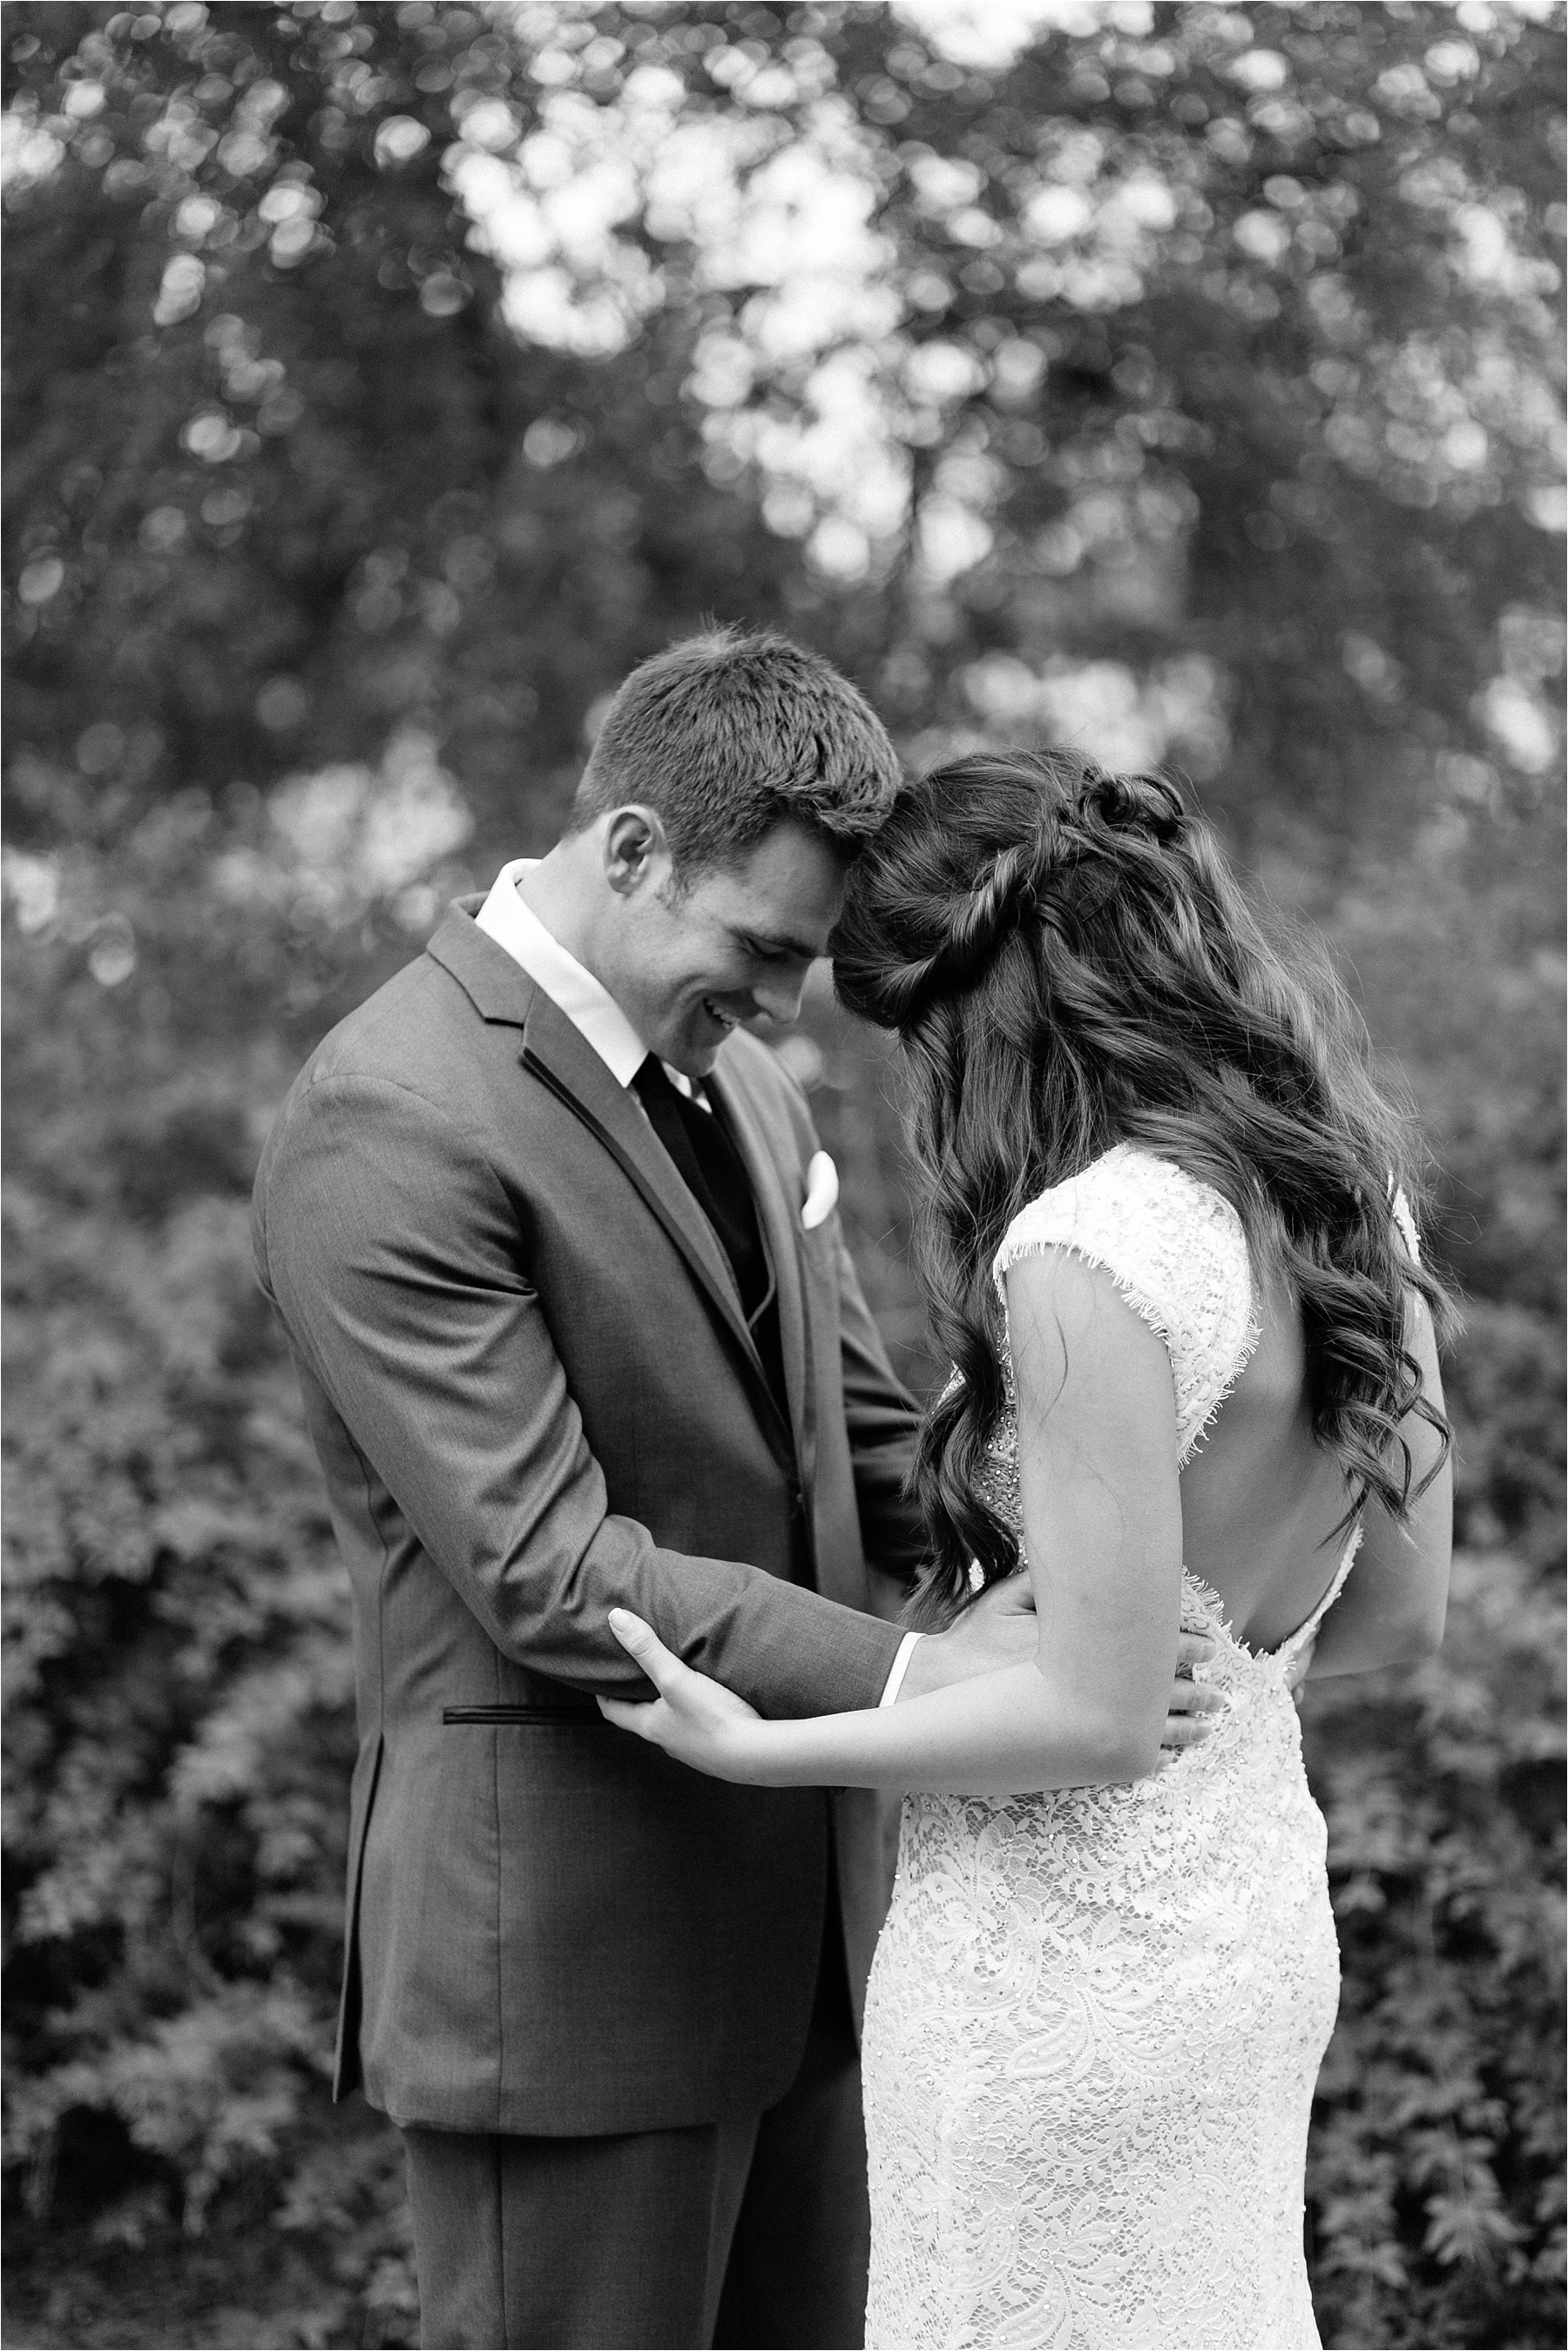 Devyn + Caden __ a Dallas Arboretum Garden Style Wedding by North Texas Wedding Photographer Rachel Meagan Photography __ 020